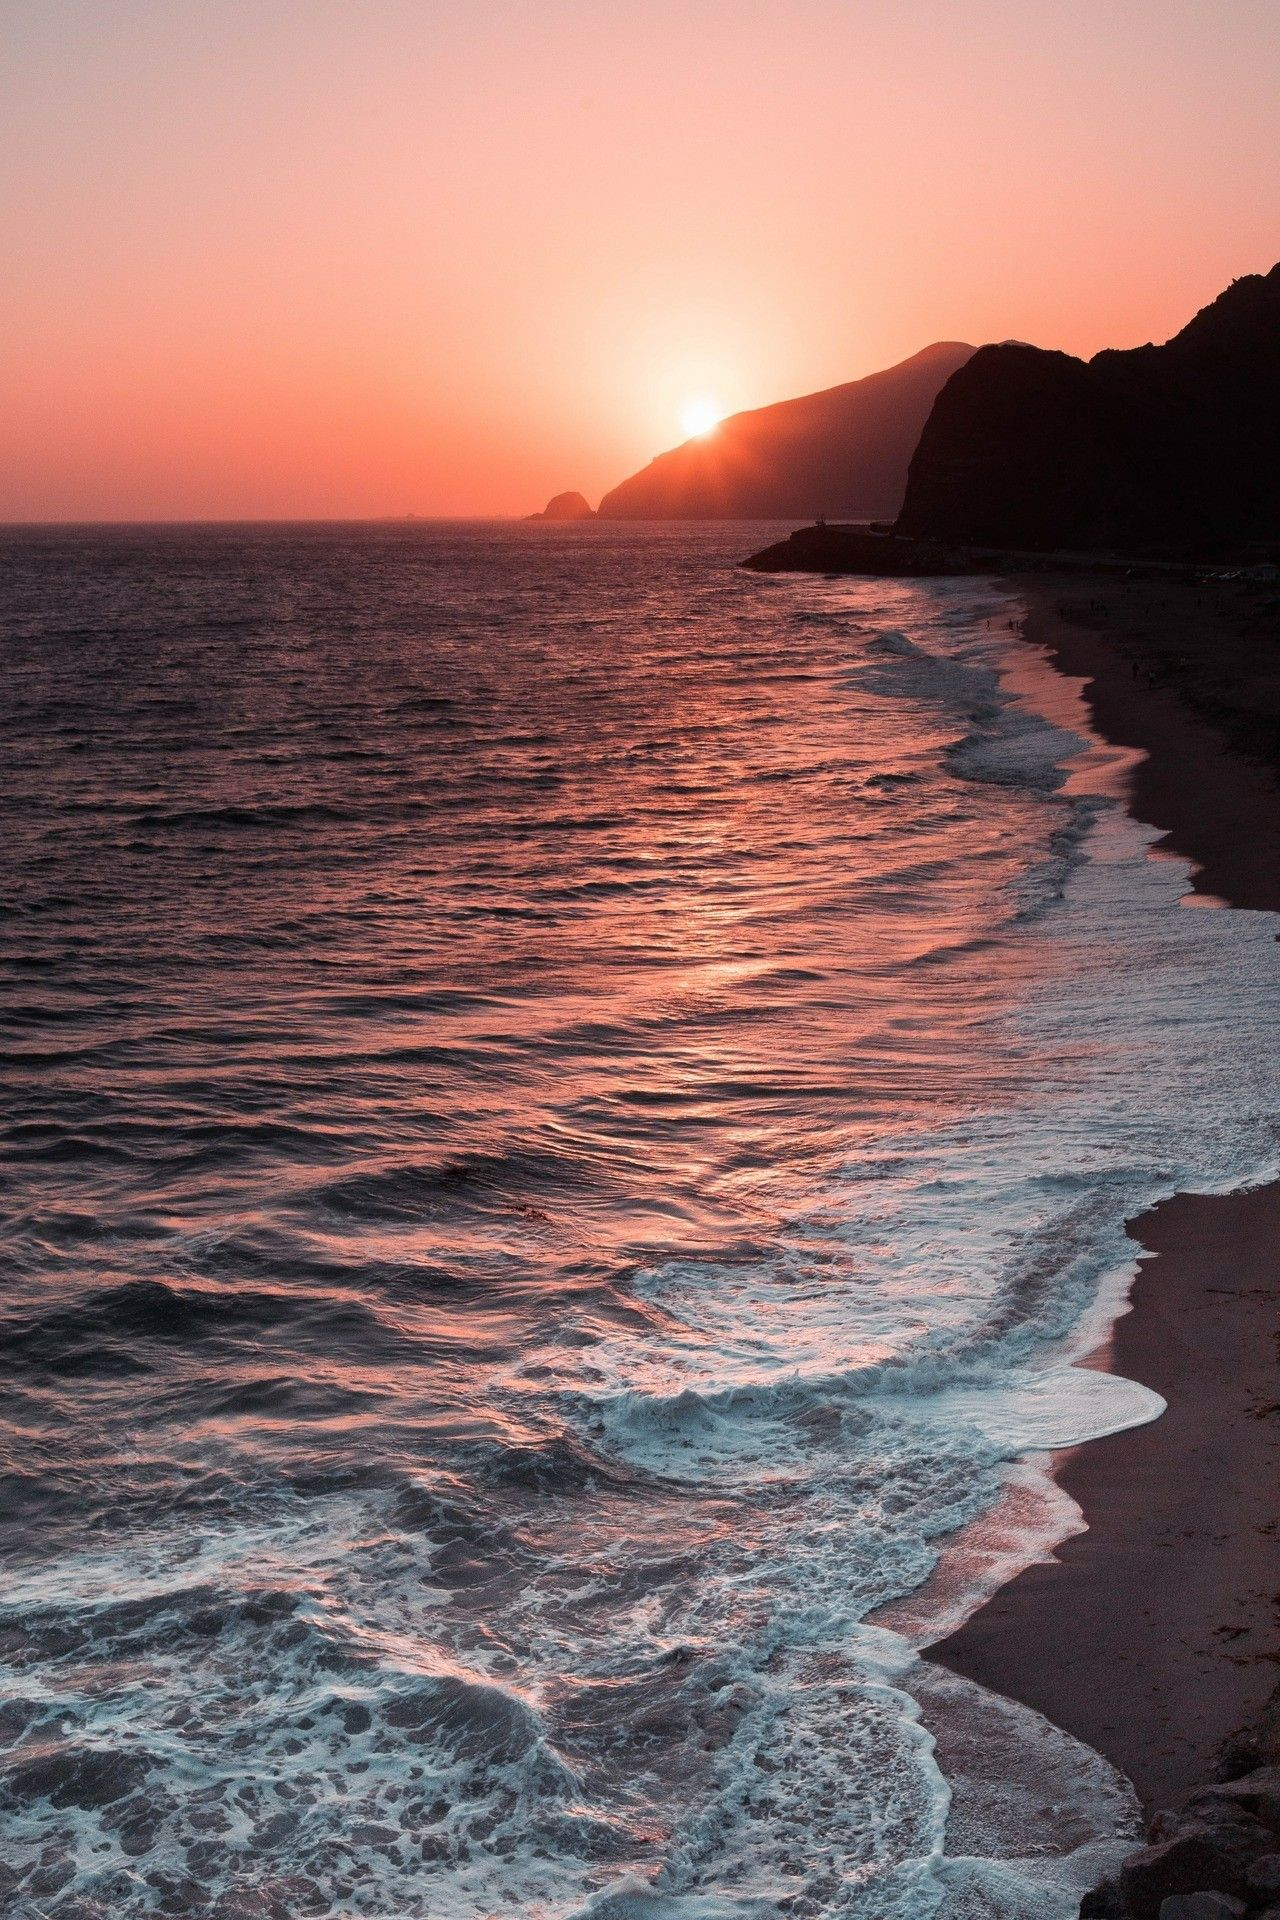 Pin By Melanie Morrow On Cool Pics Sunset Beach Pictures Sunset Pictures Beach Sunset Wallpaper